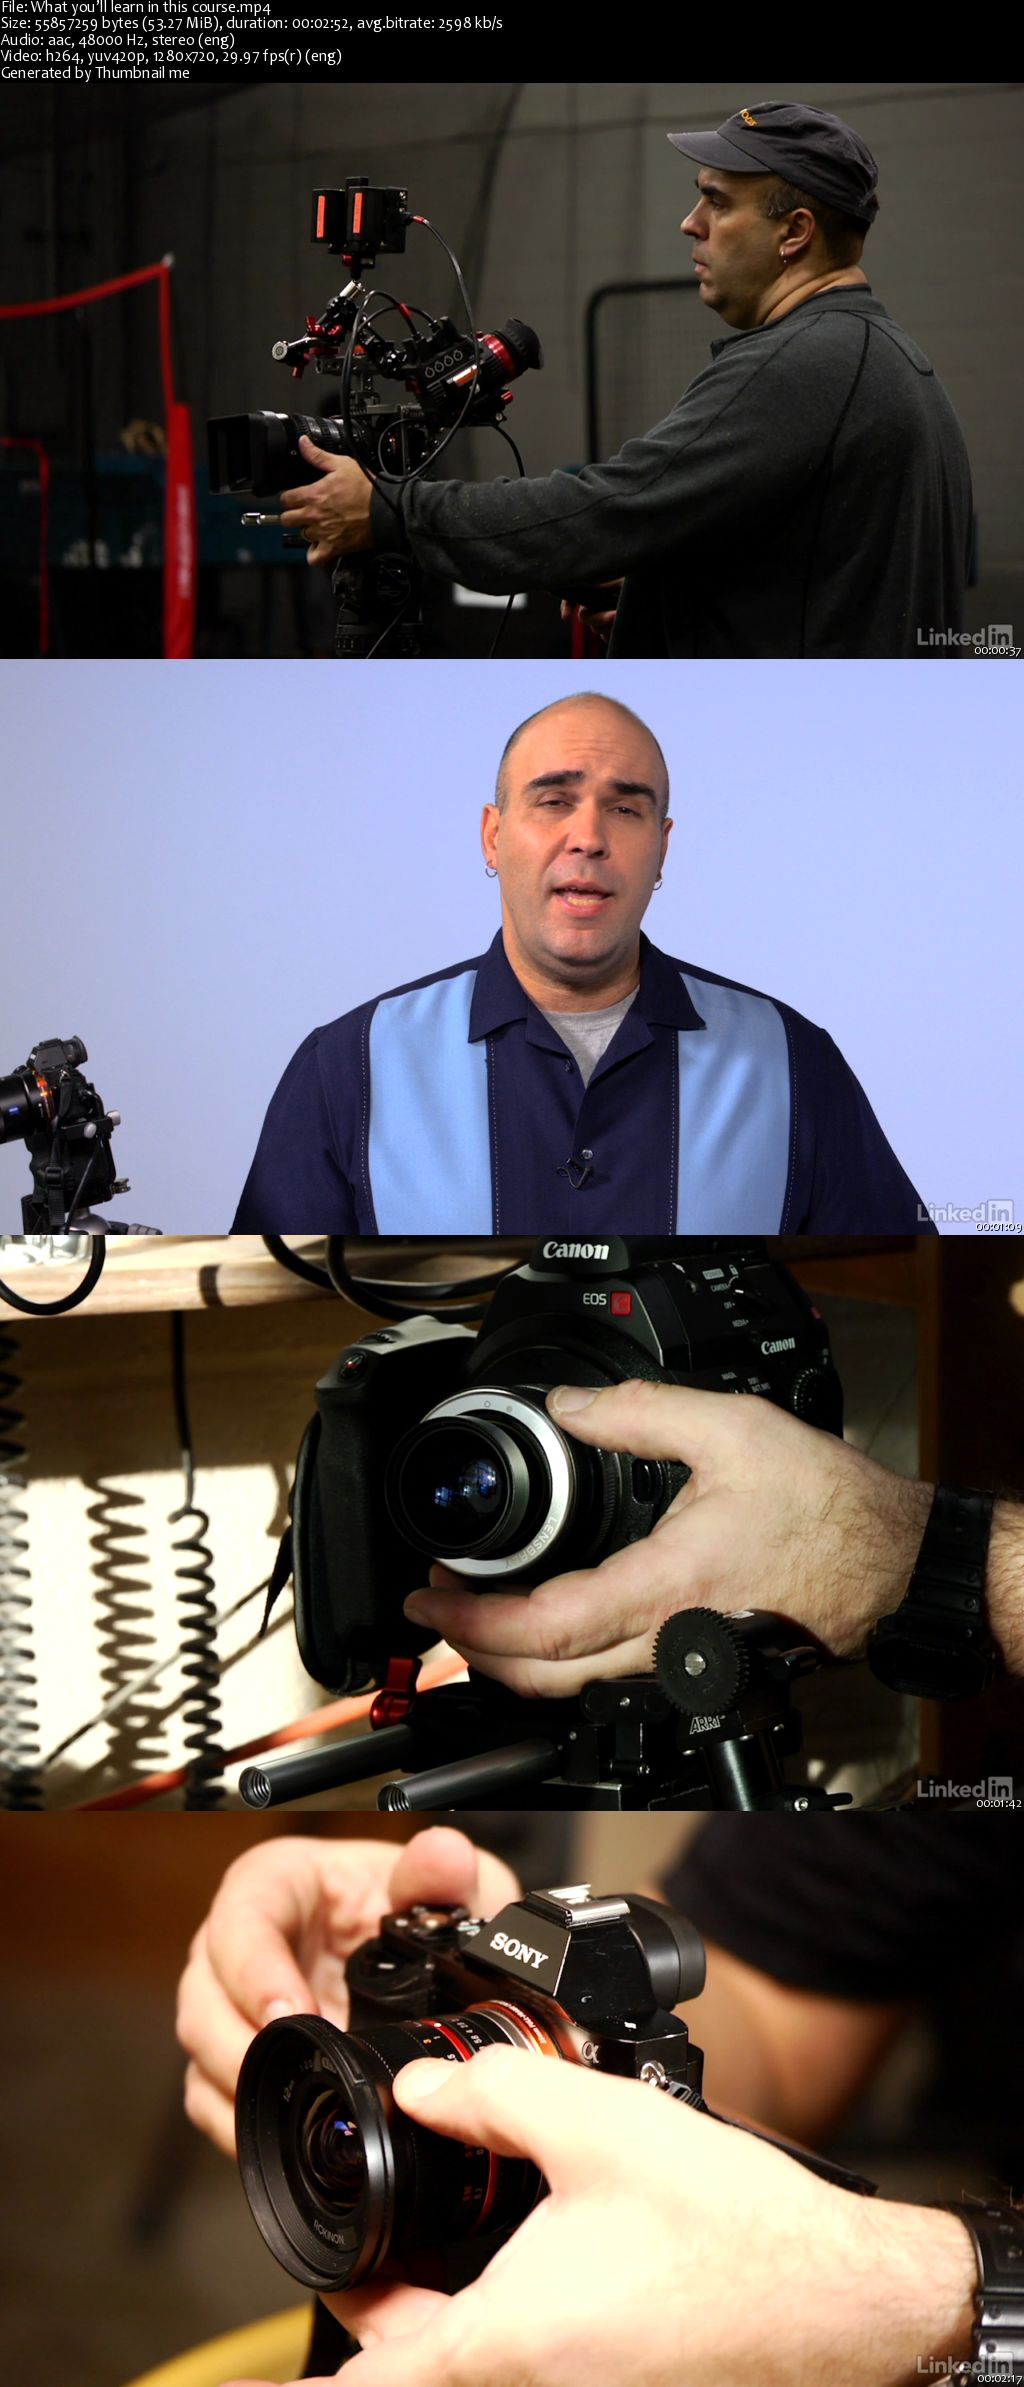 Prime Lenses for Photography and Video Production